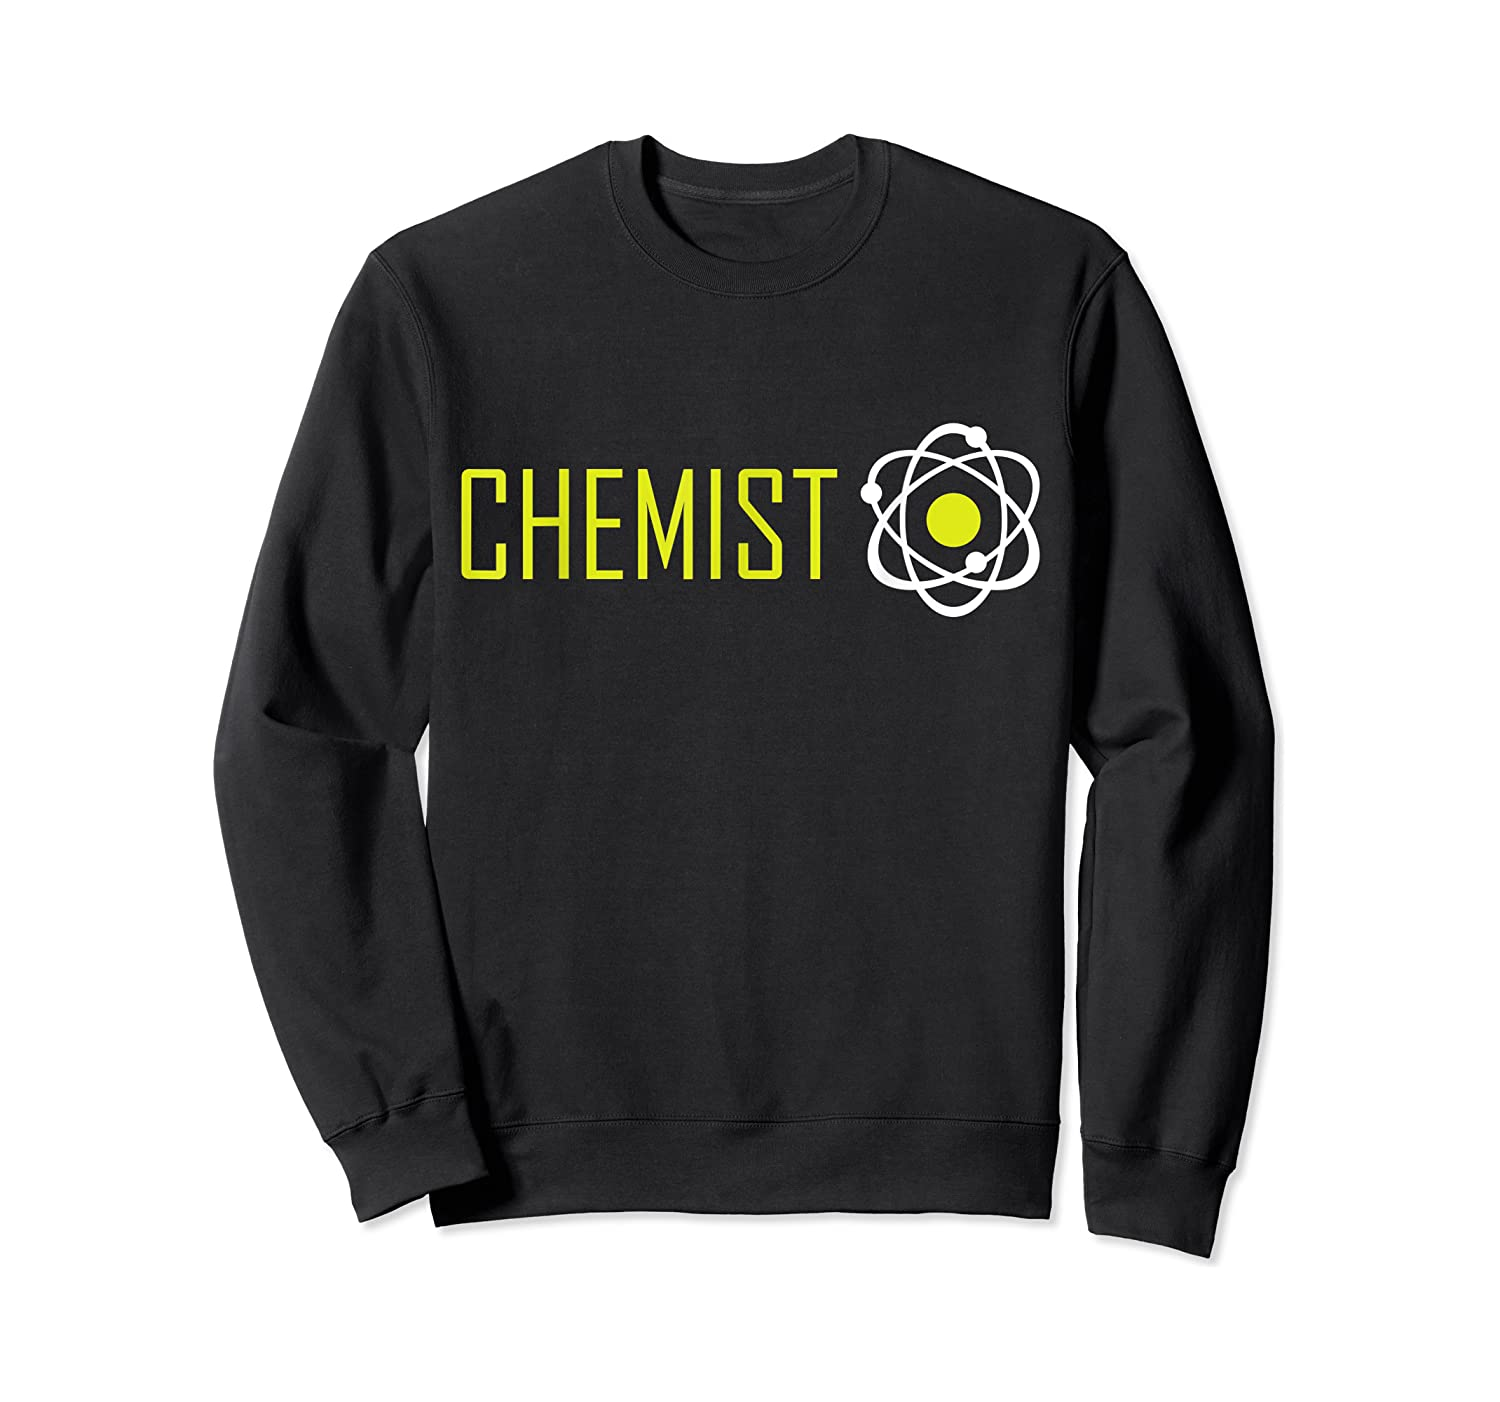 Scientist Chemis, March For Science Atom Protest Shirts Crewneck Sweater